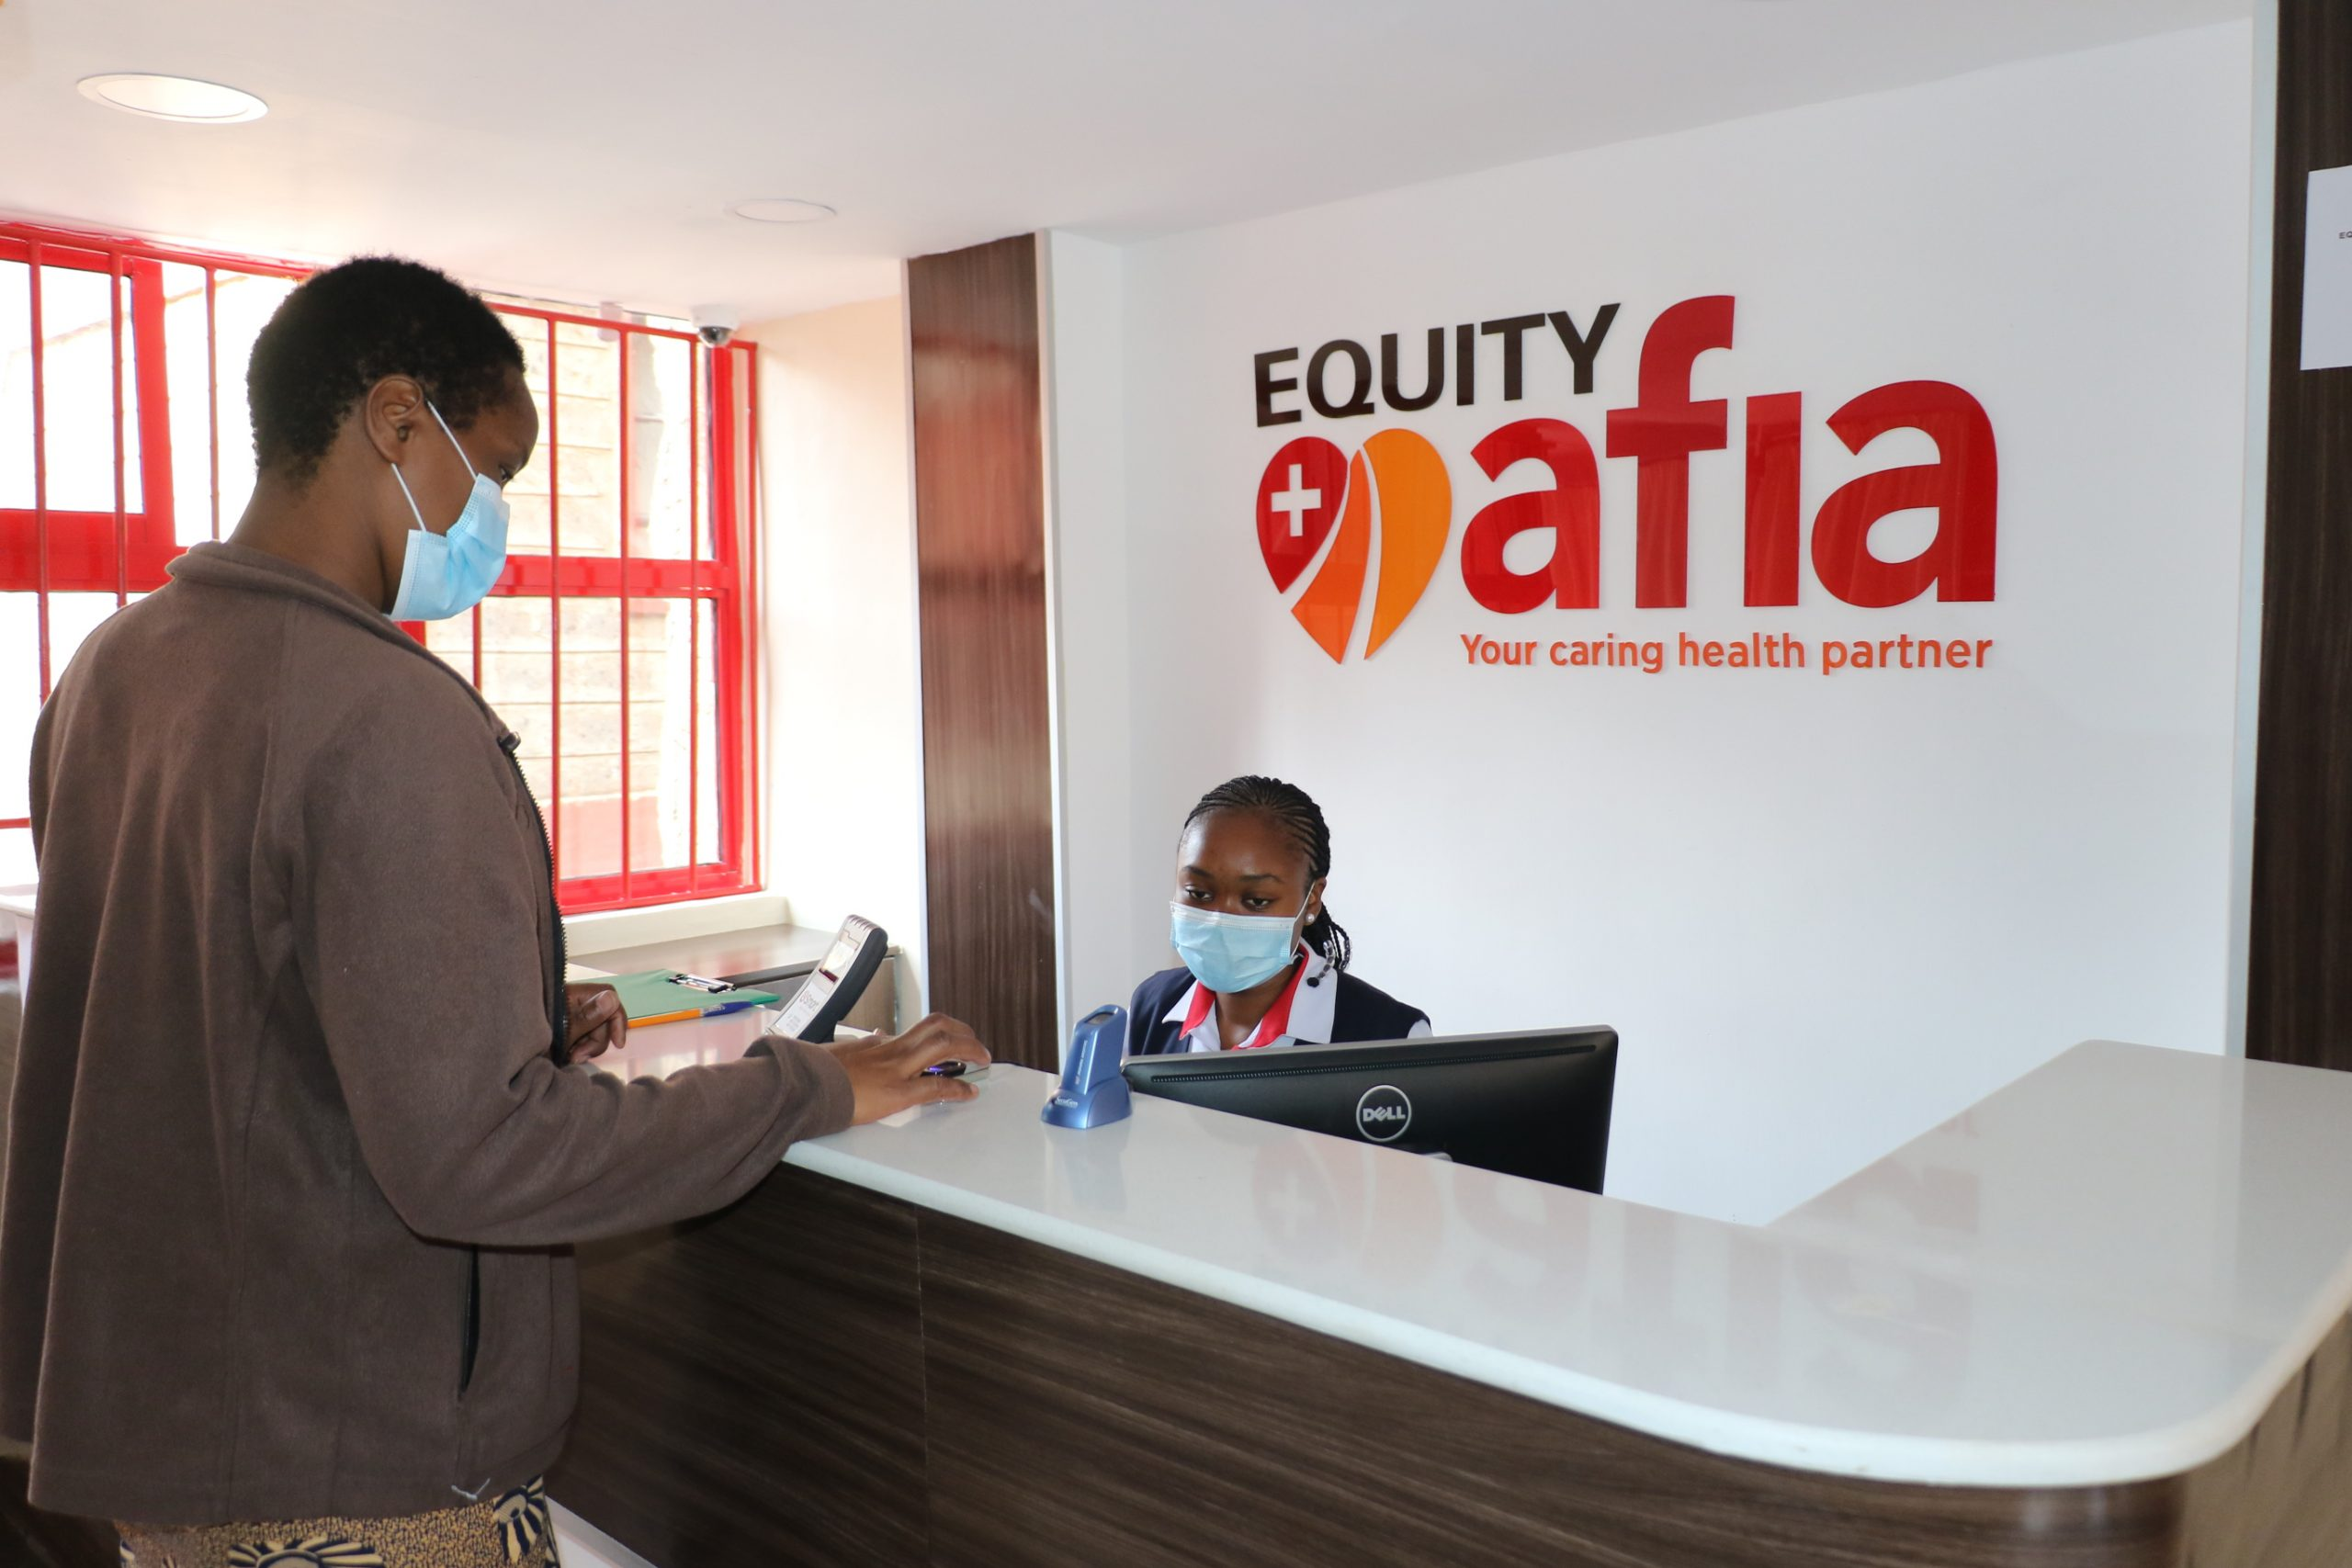 Equity Afia opens clinics in Kitengela, Ngong and along the Eastern Bypass